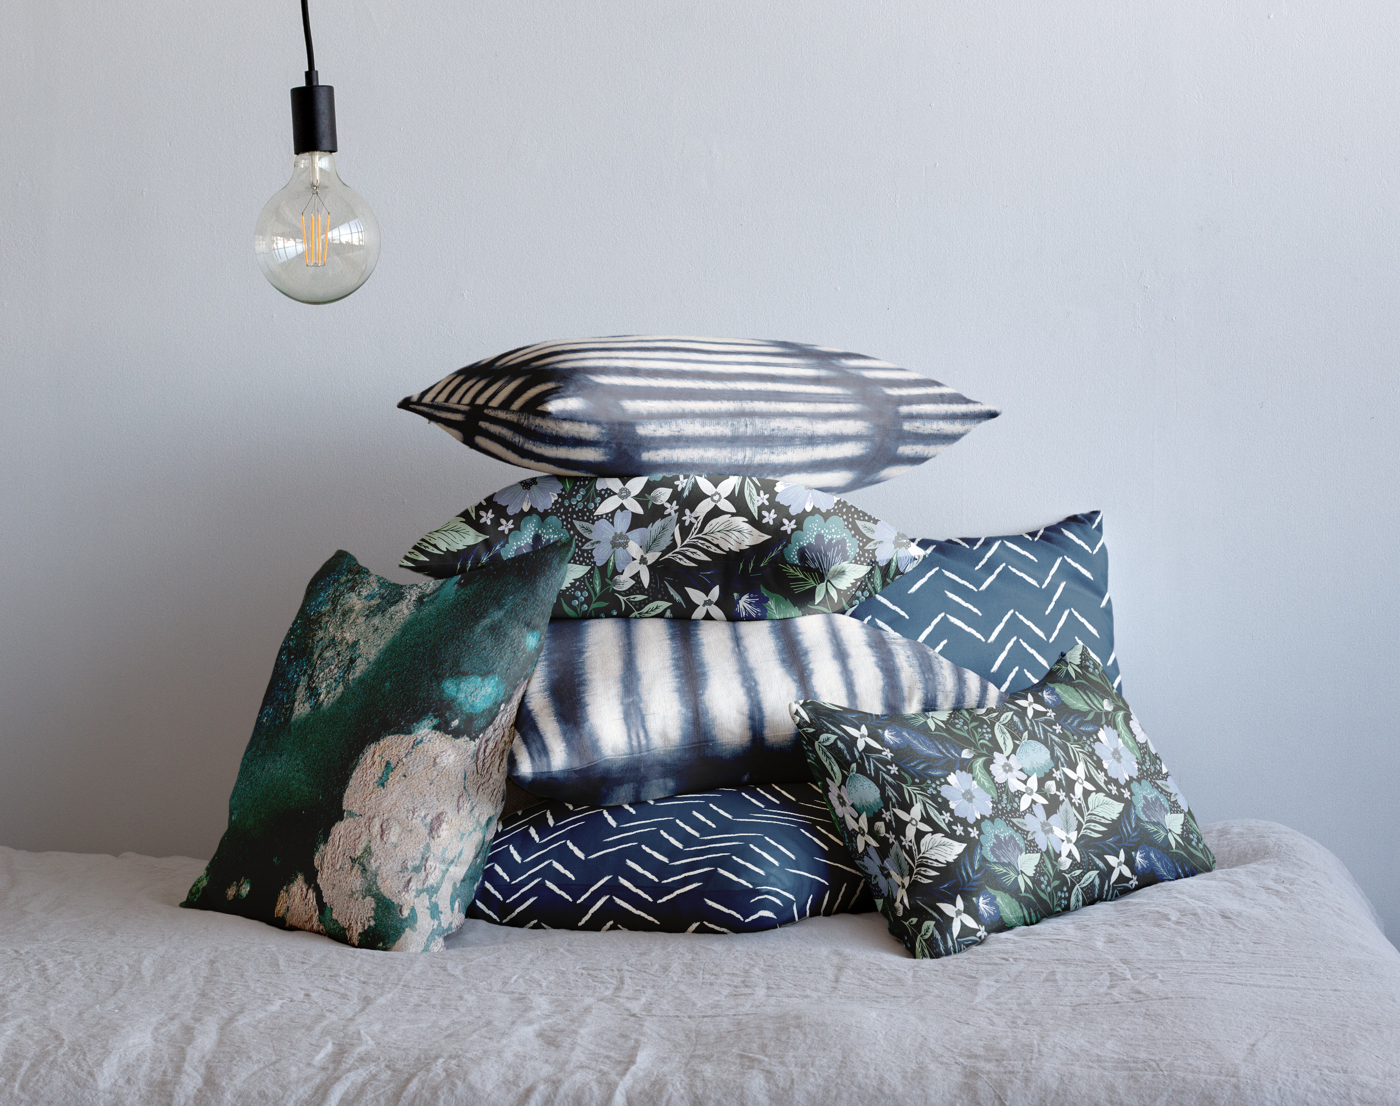 Looking for some unique pillows for your home? Minted has a whole collection designed by independent artists! These are perfect for decorating your living room or bedroom. See more on the Mix & Match Design Company Blog.